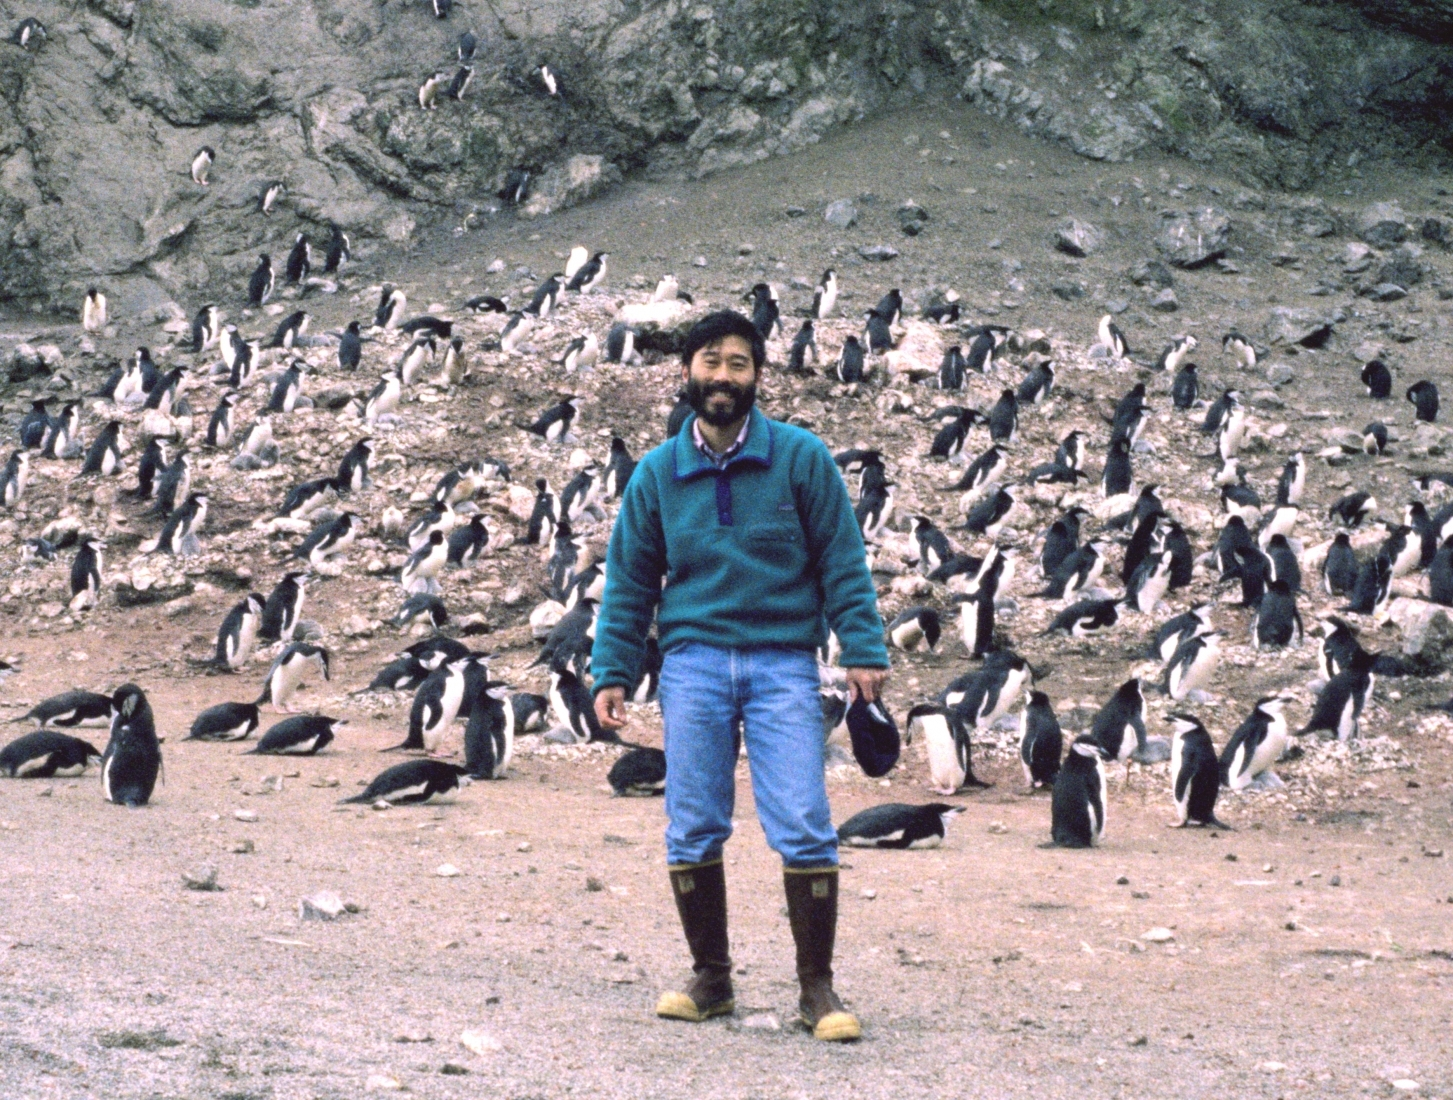 A man with a group of penguins behind him.